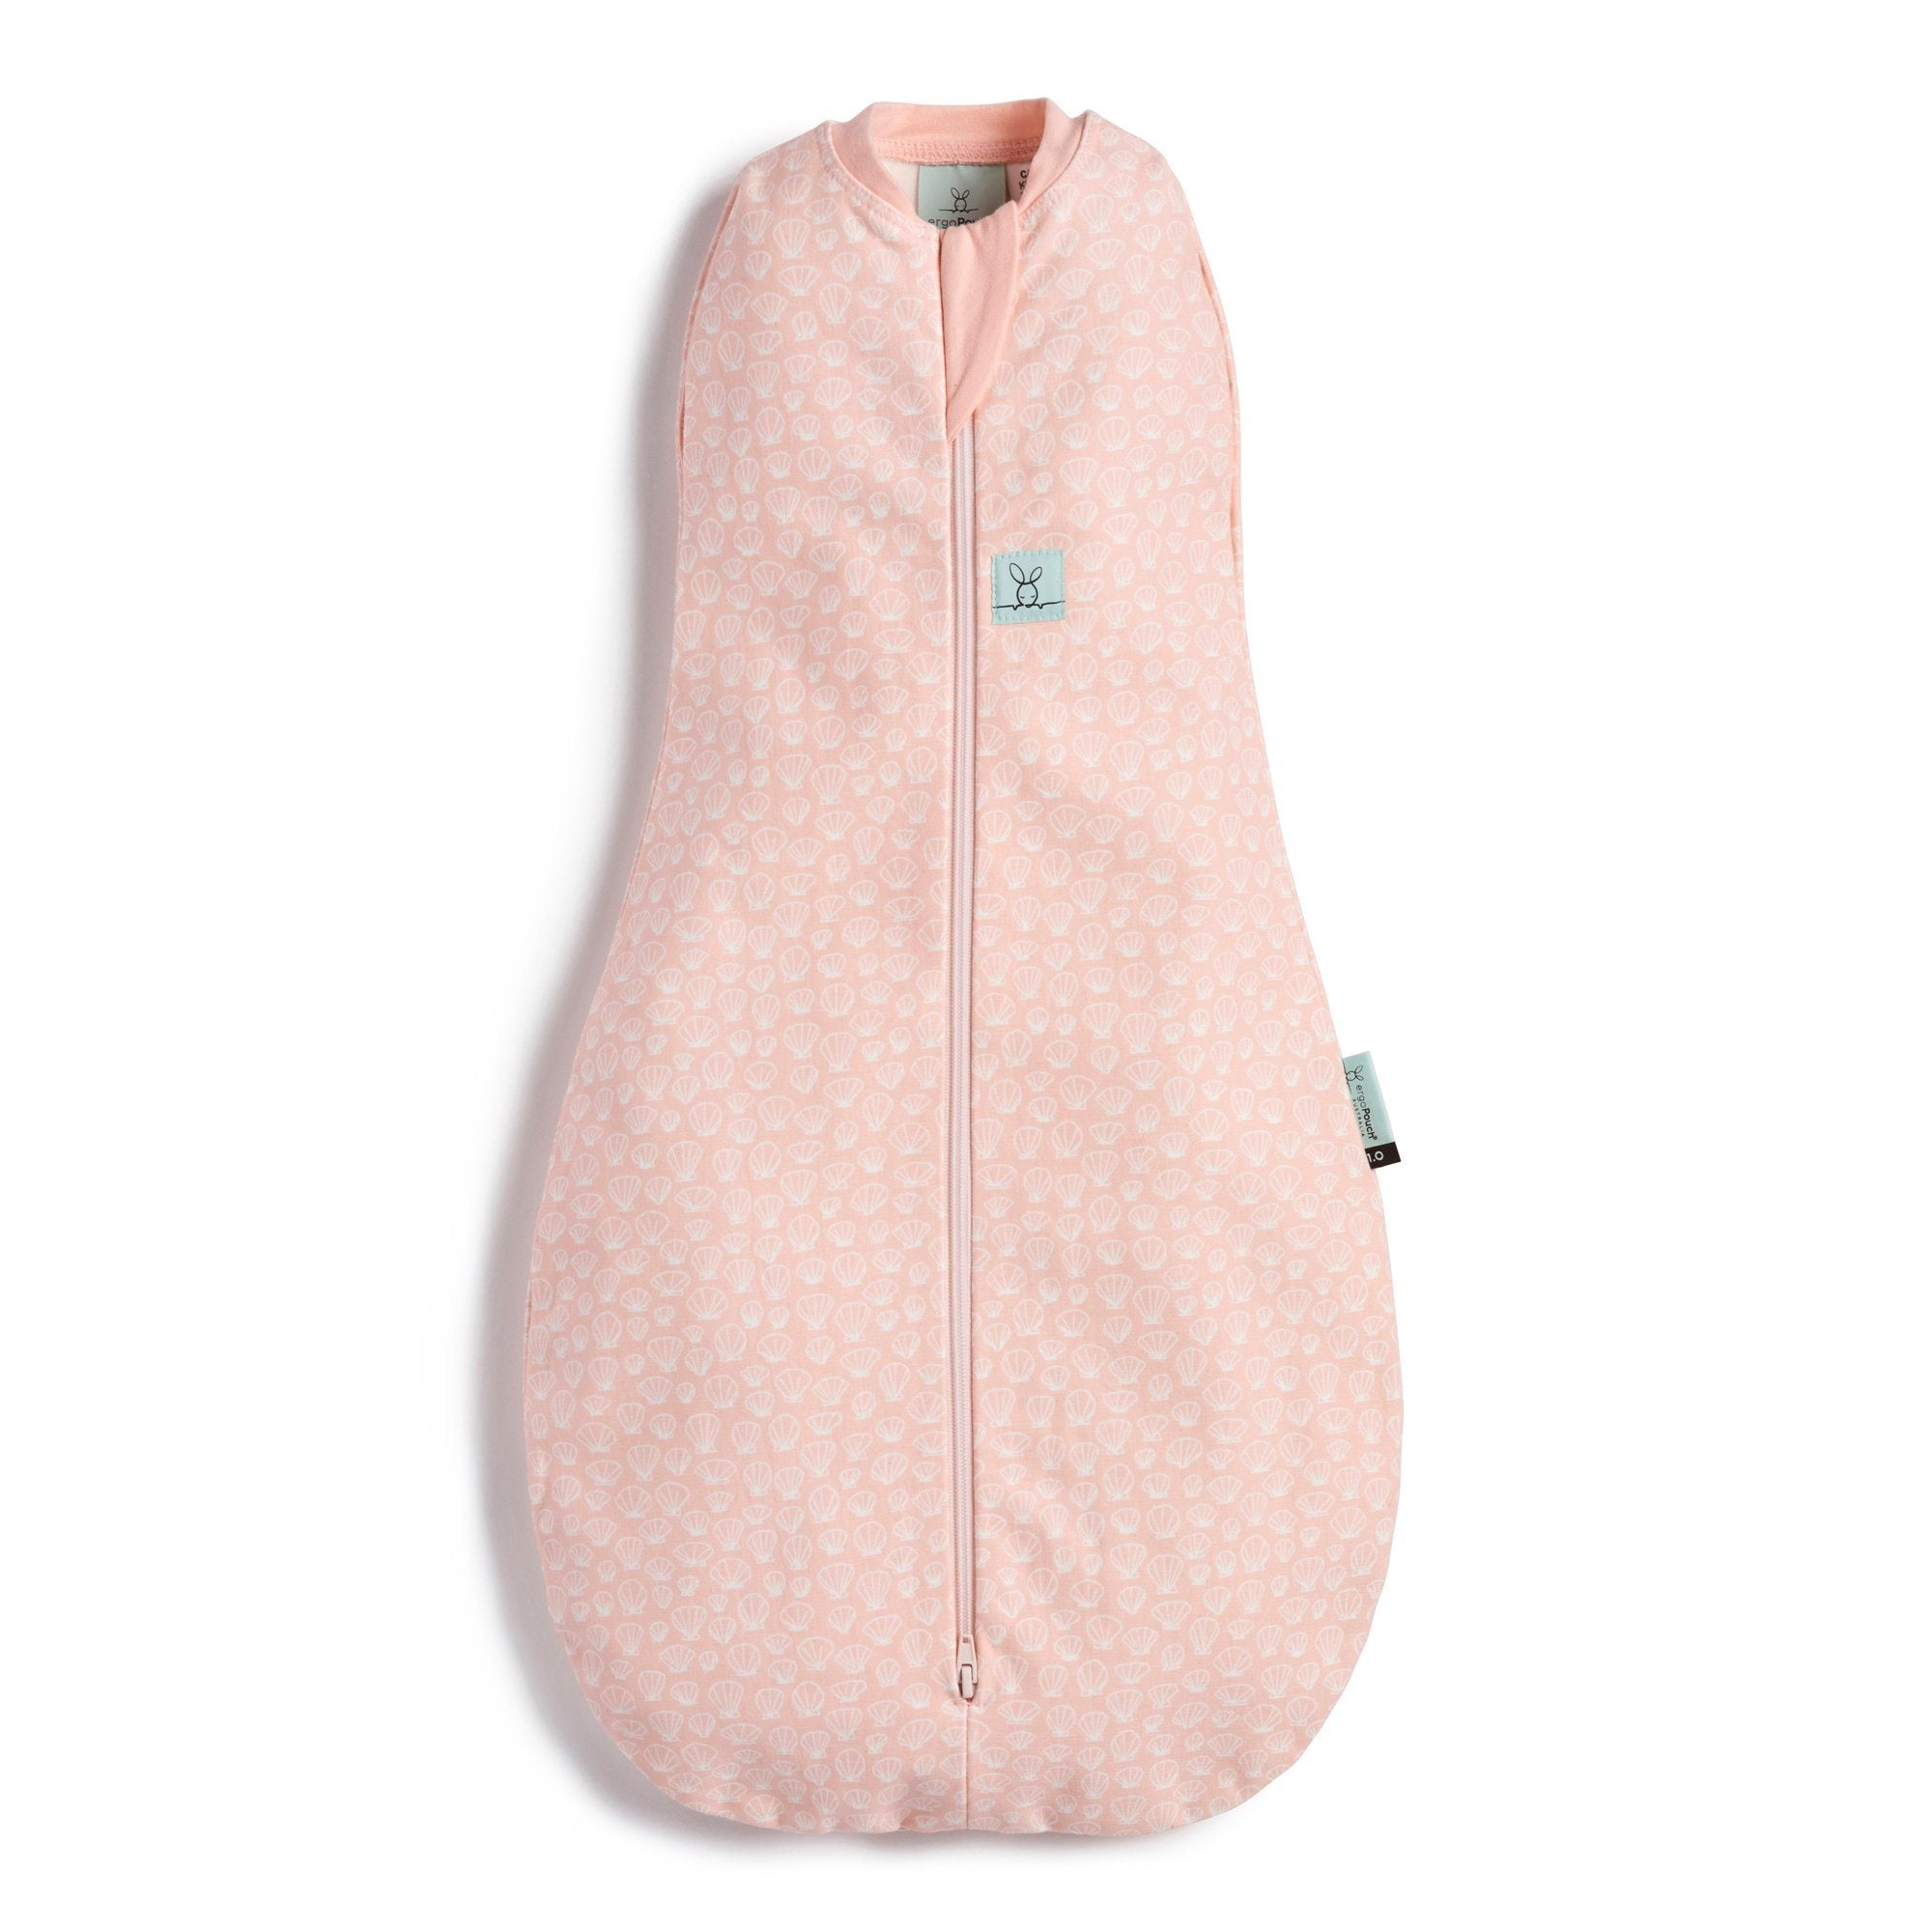 Cocoon Swaddle Bag 1.0 tog (Shells)